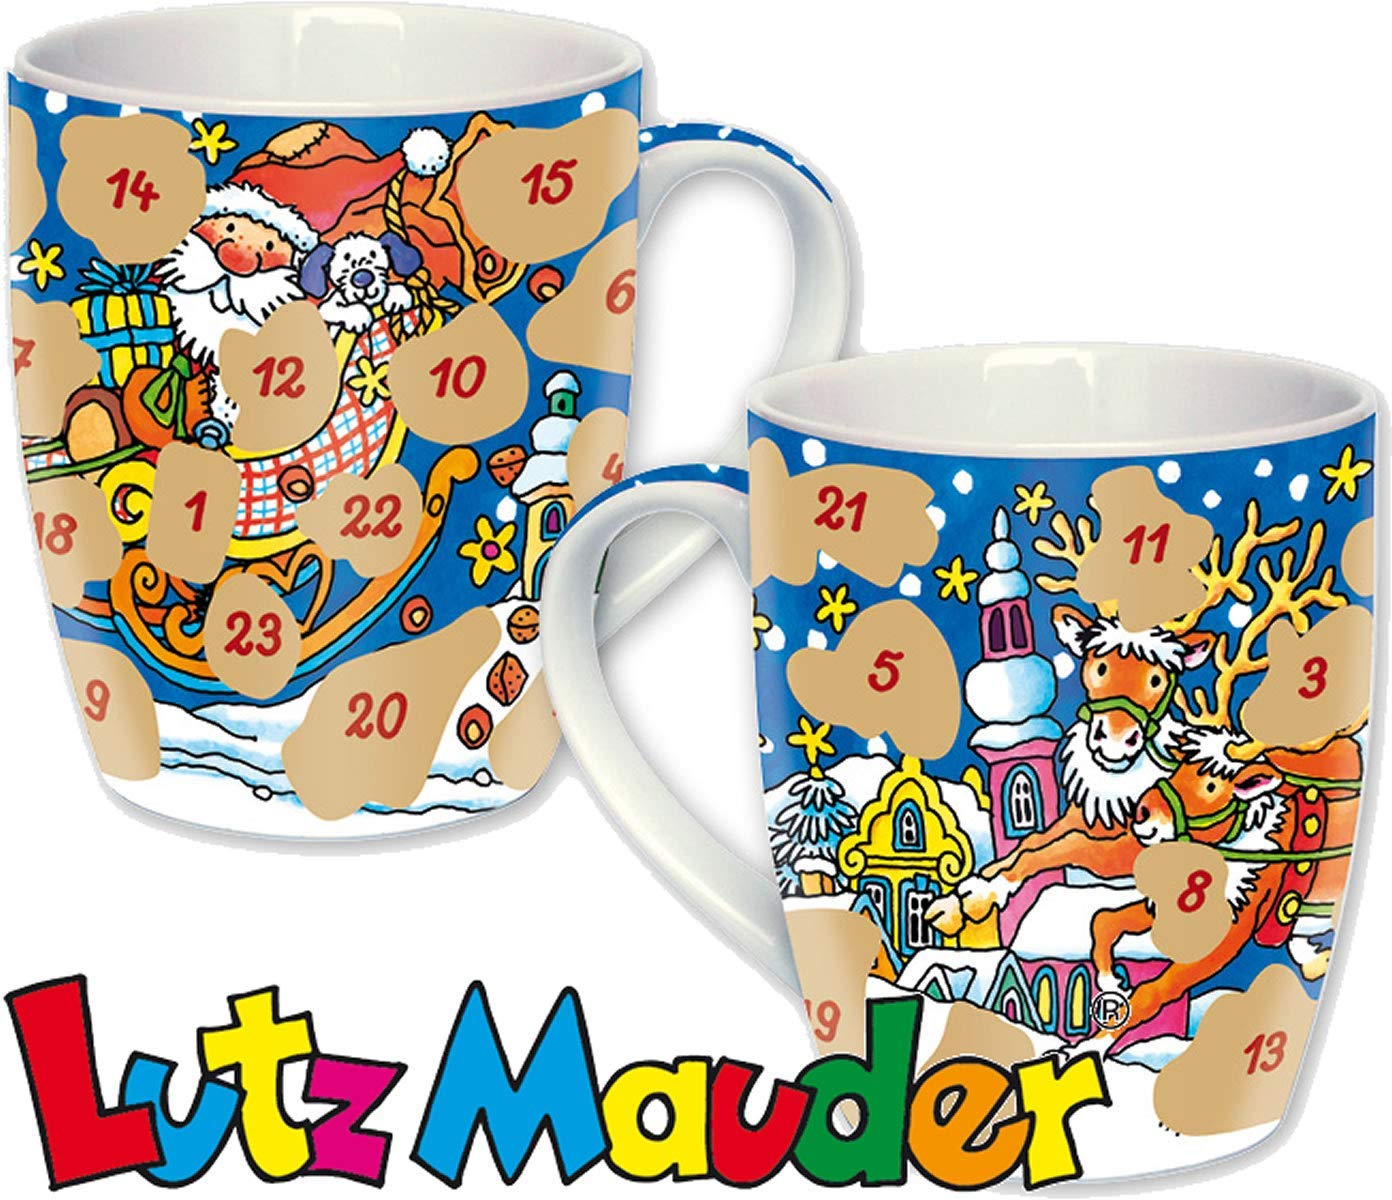 Adventskalender Tasse, Advent ...Advent ein lichtlein ... Rubbel Tasse